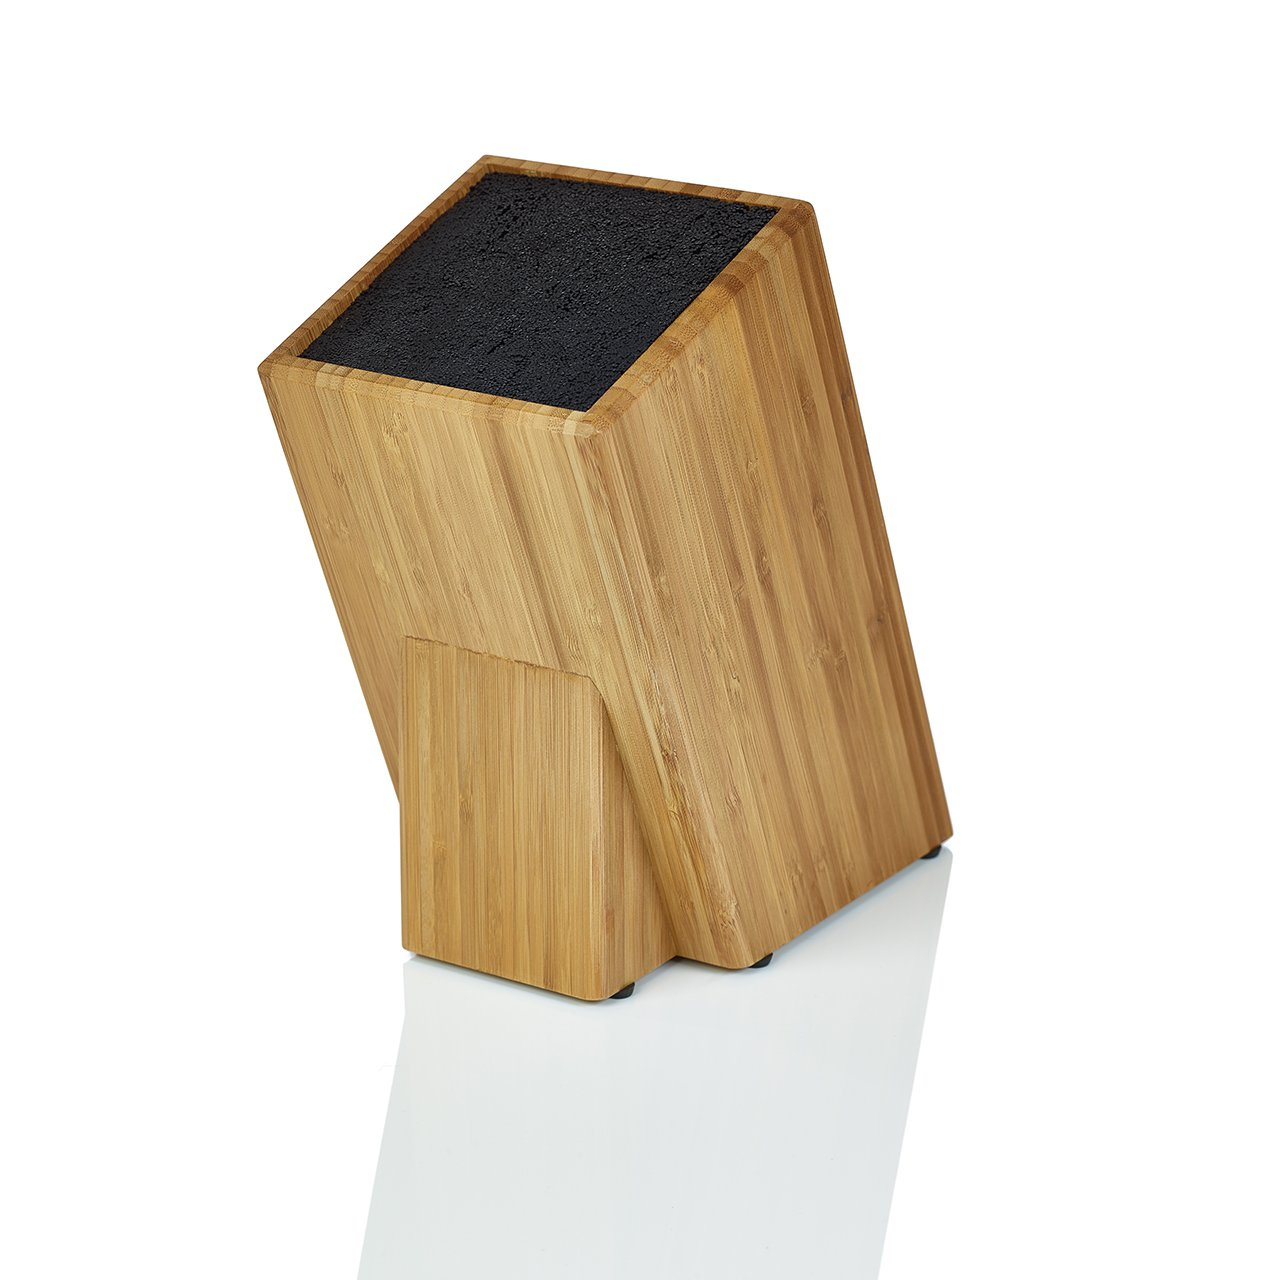 Kapoosh Dice Knife Block, Bamboo Wood by Kapoosh